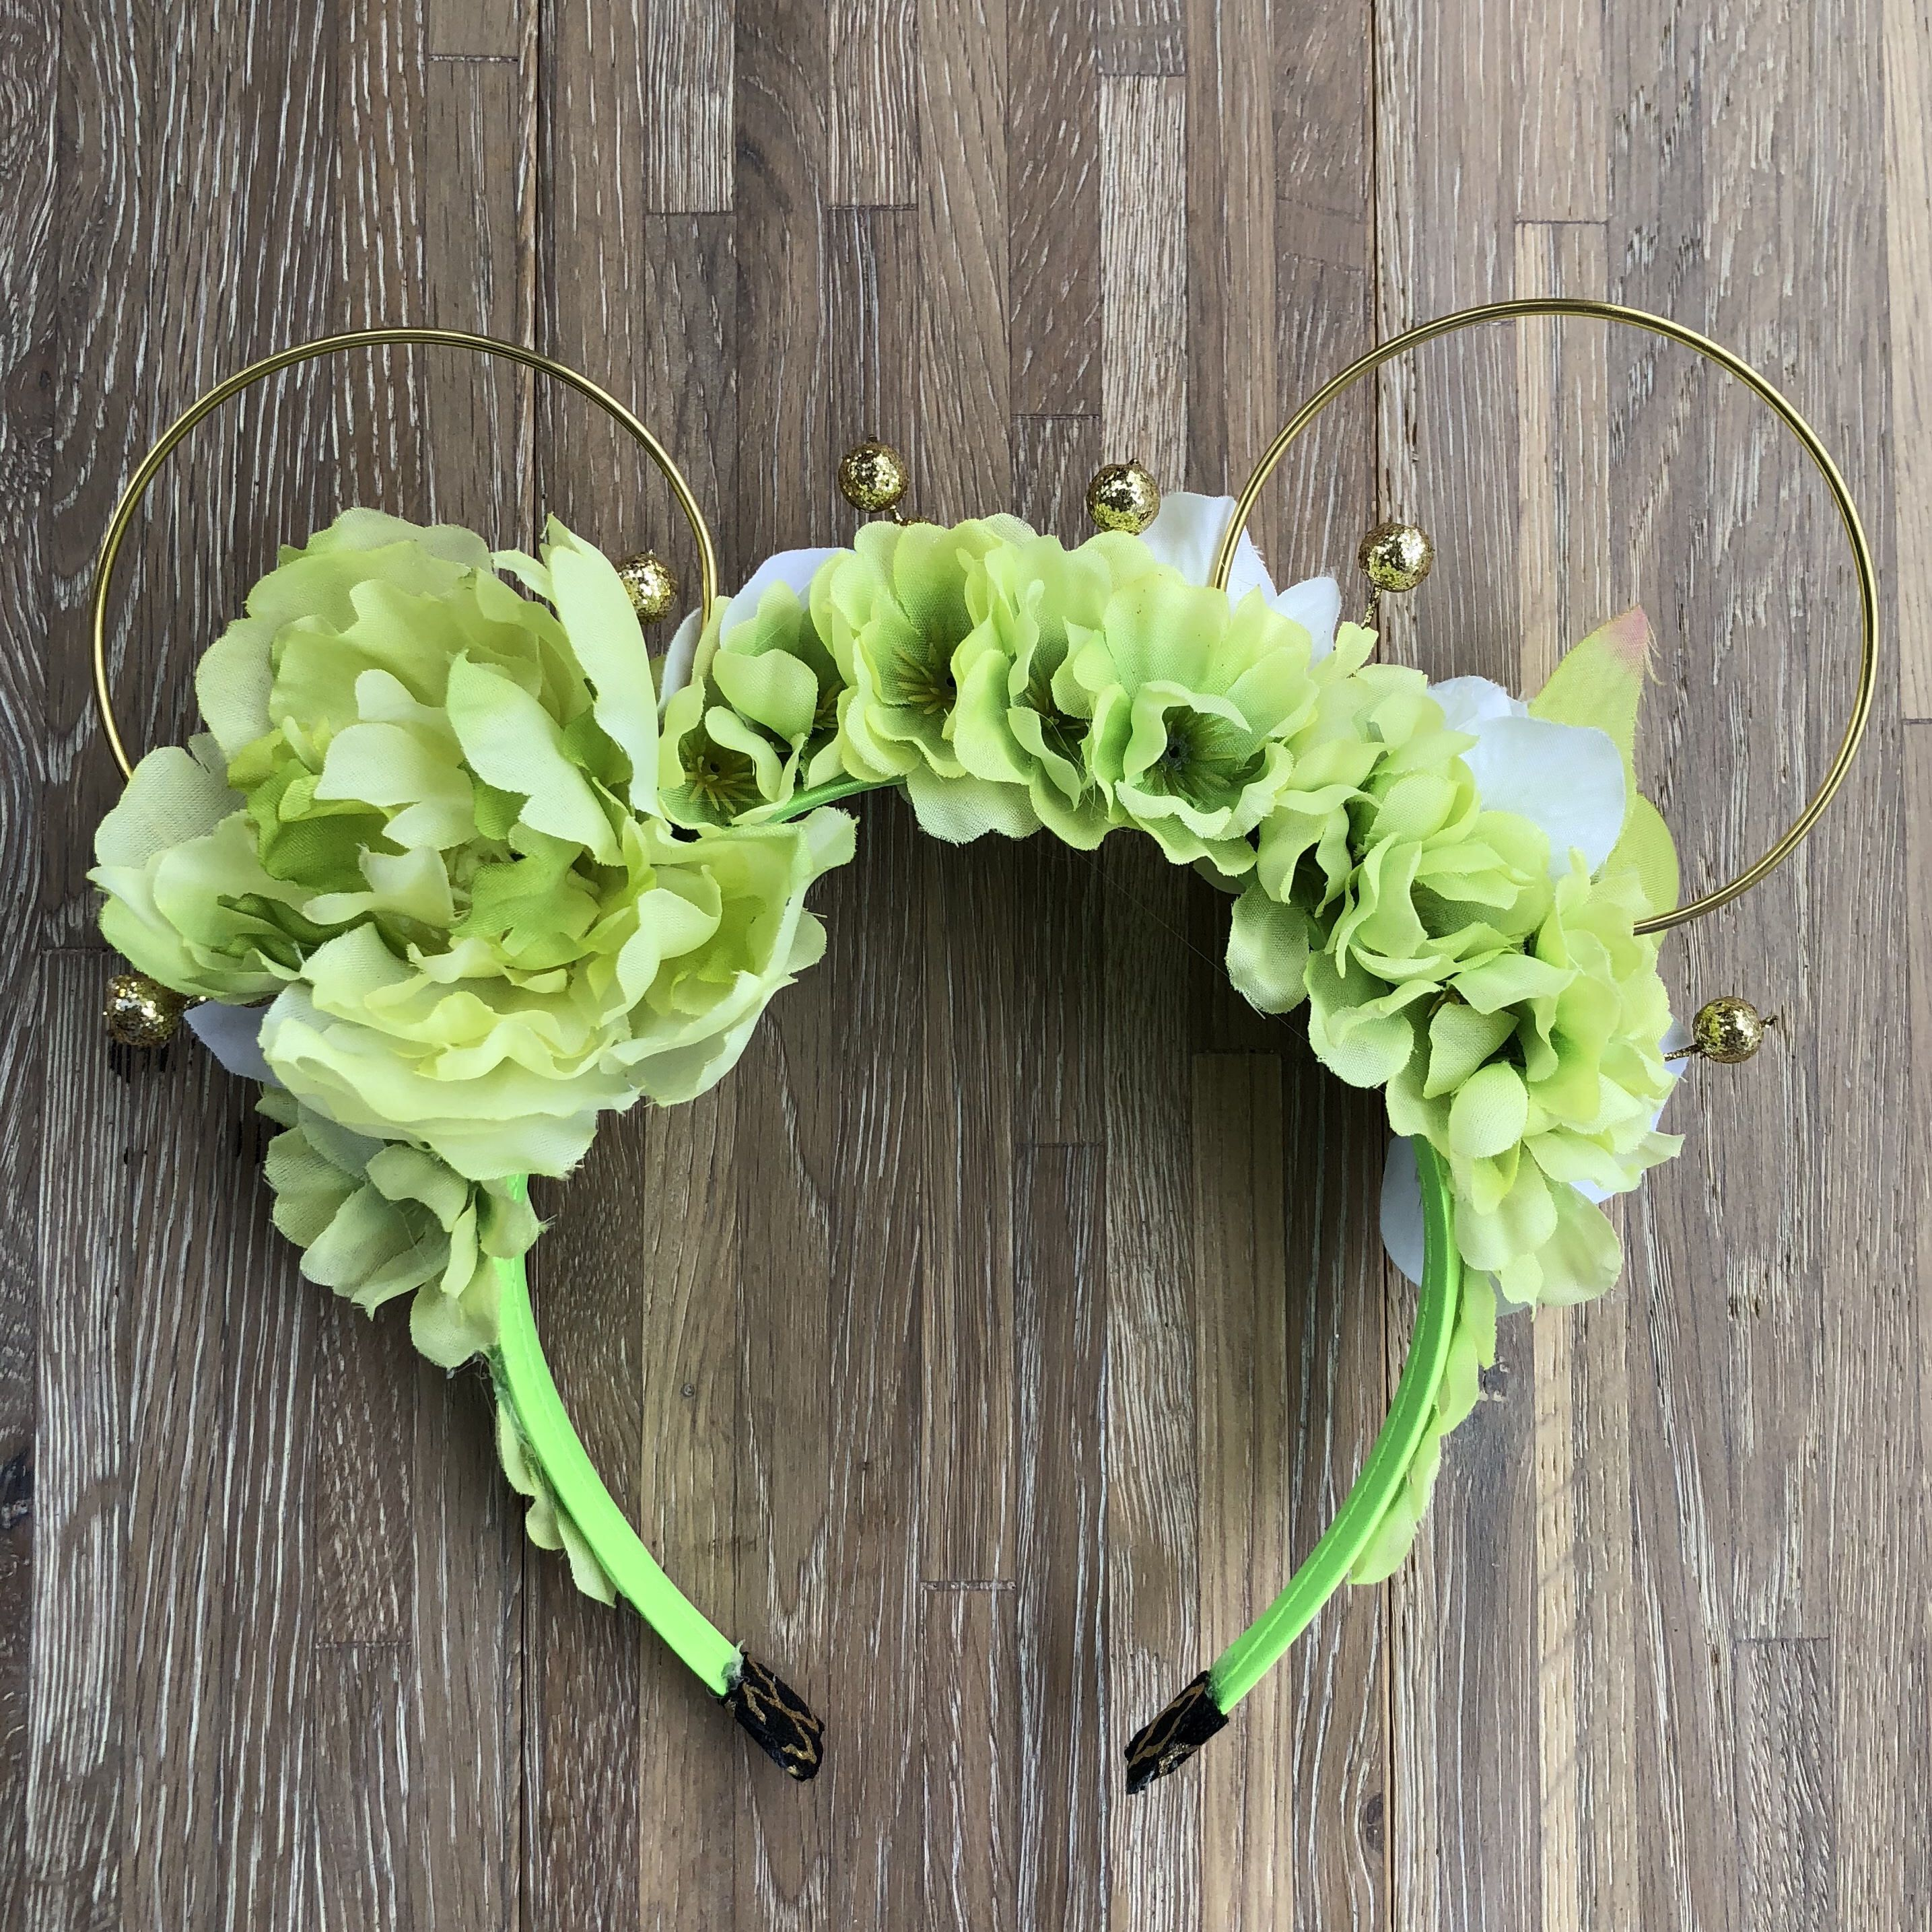 Faith trust and pixie dust tinkerbell inspired wire flower tinkerbell inspired wire flower crown mickey ears for disney aspoonfulofextra disneyworld flowercrown minnieears disneyprincess izmirmasajfo